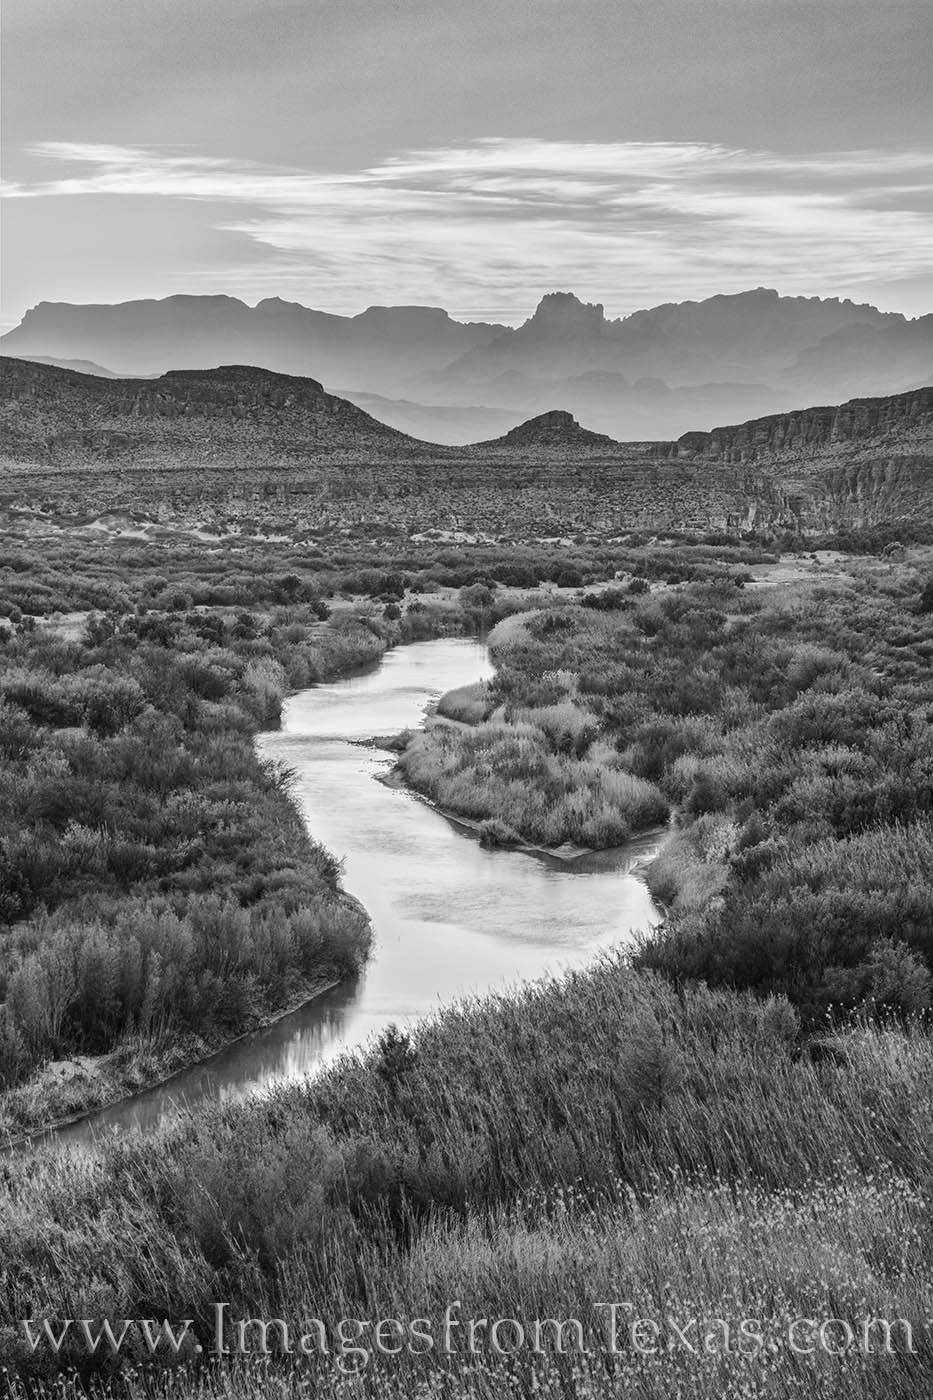 The Rio Grande flows eastward toward the Gulf of Mexico in this black and white photograph from Big Bend National Park. The rugged...